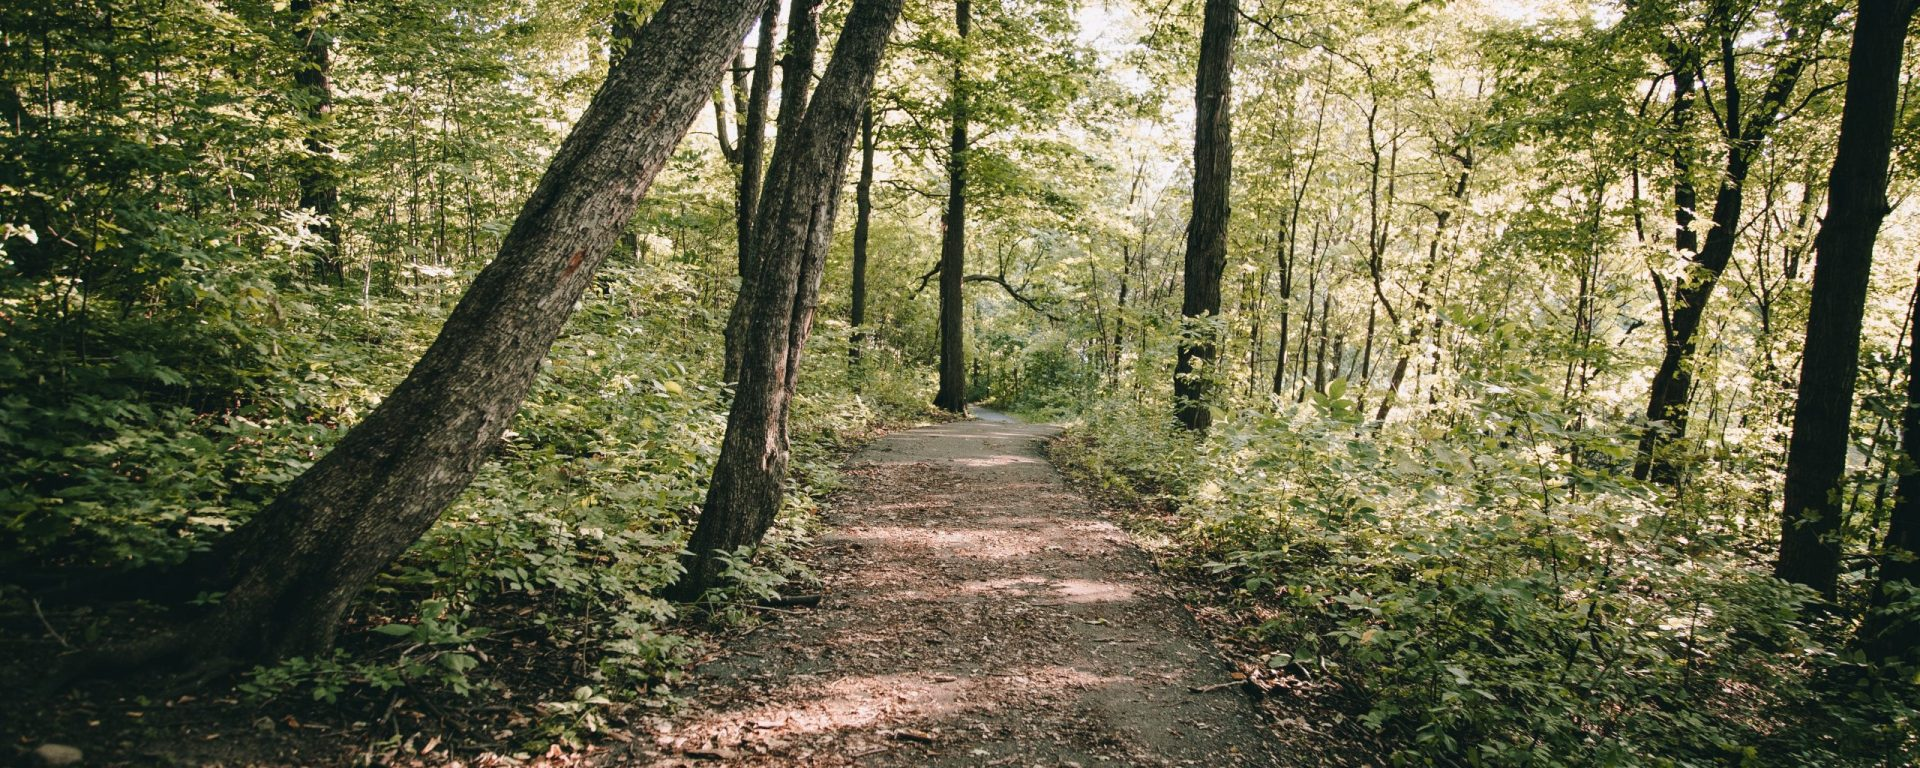 connecticut walking trails for disabled adults